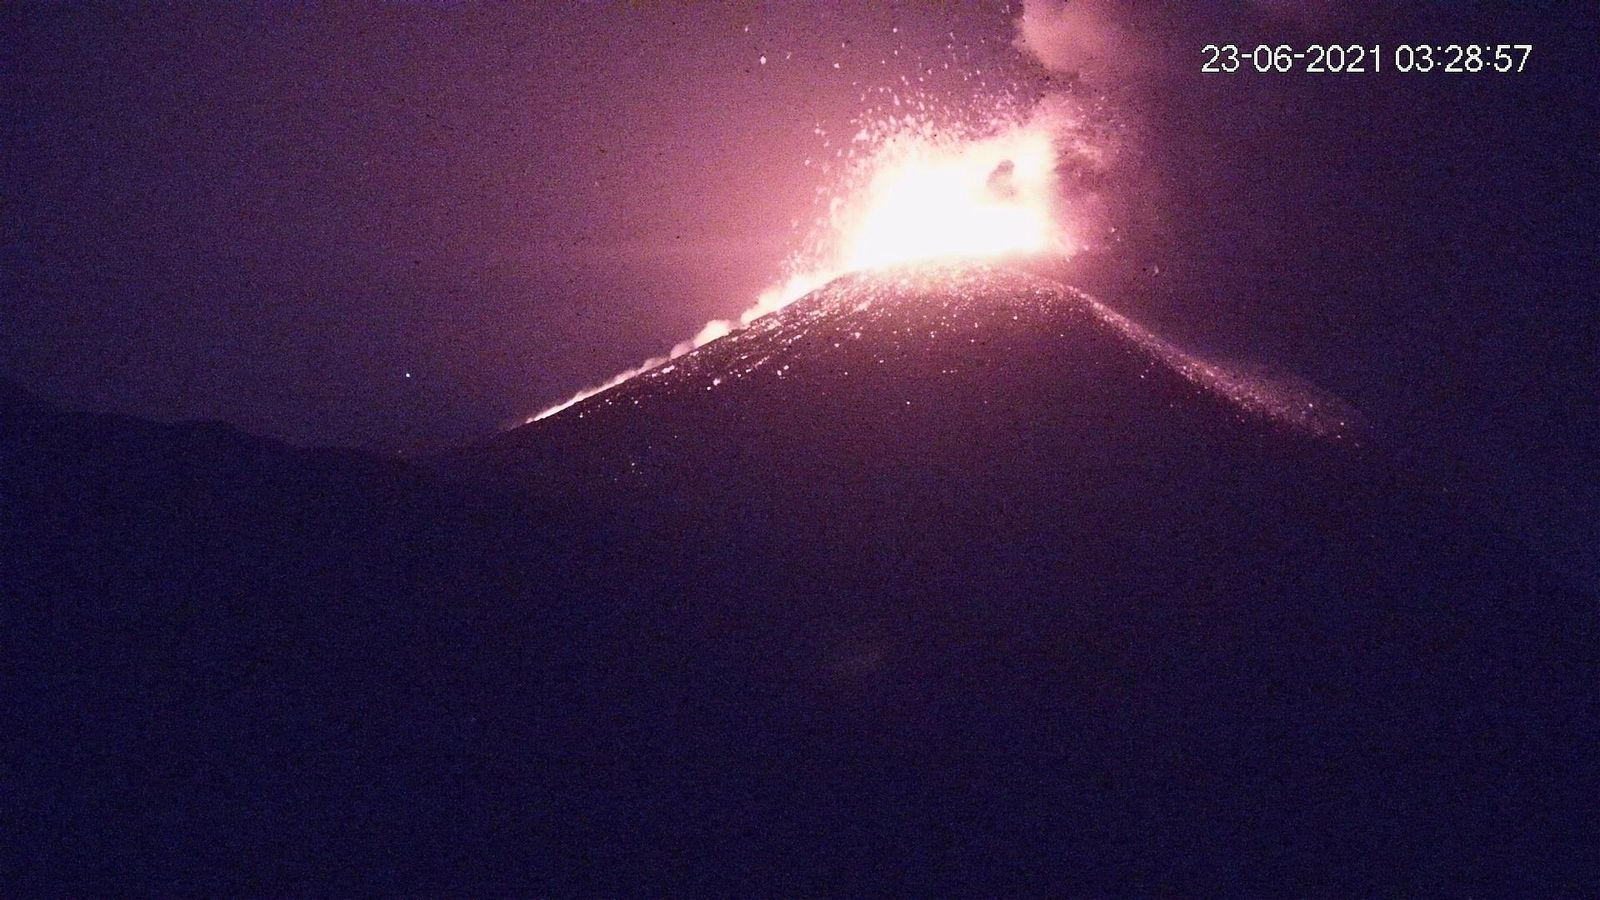 Etna SEC- activity from 23.06.2021 / at 03:28 and 03:58 - new webcam LAVE